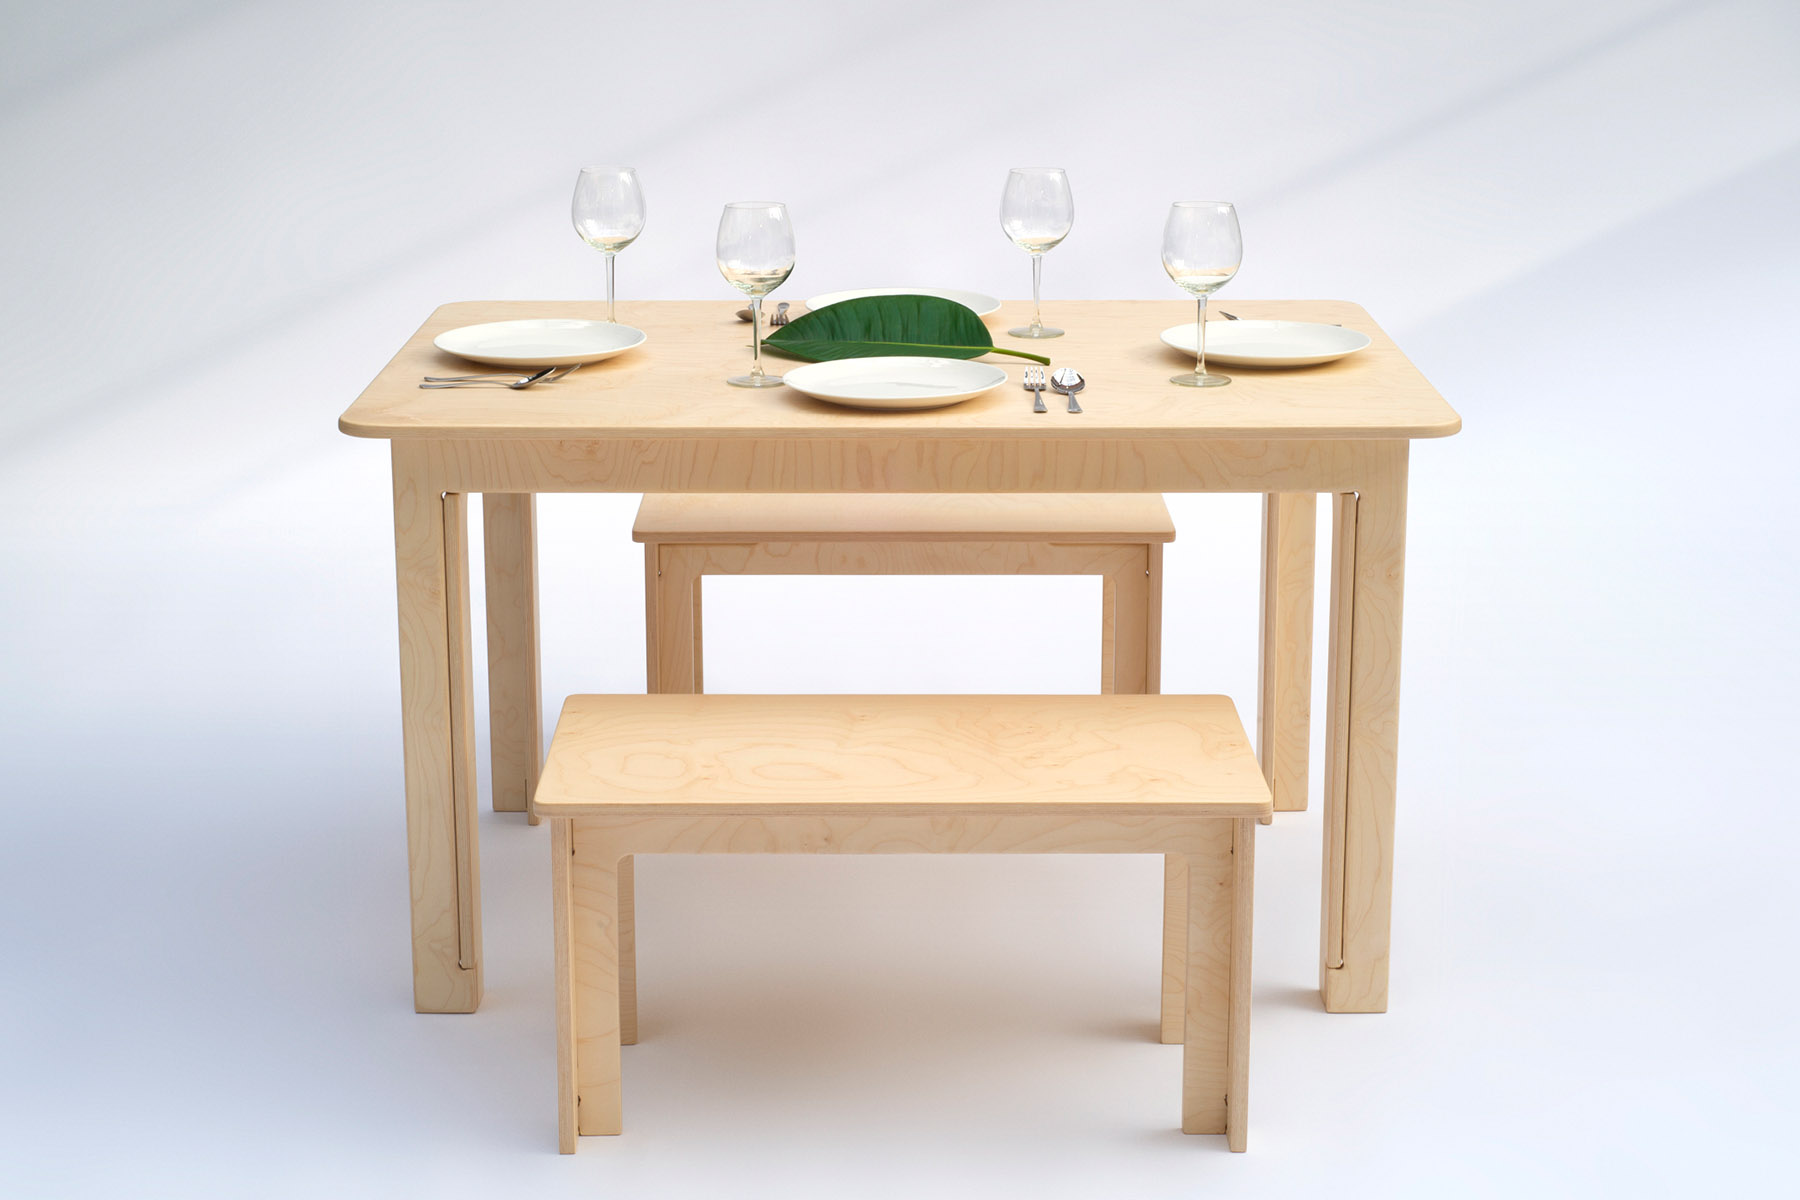 Dining table for four, with coffee tables (sold separately) as benches